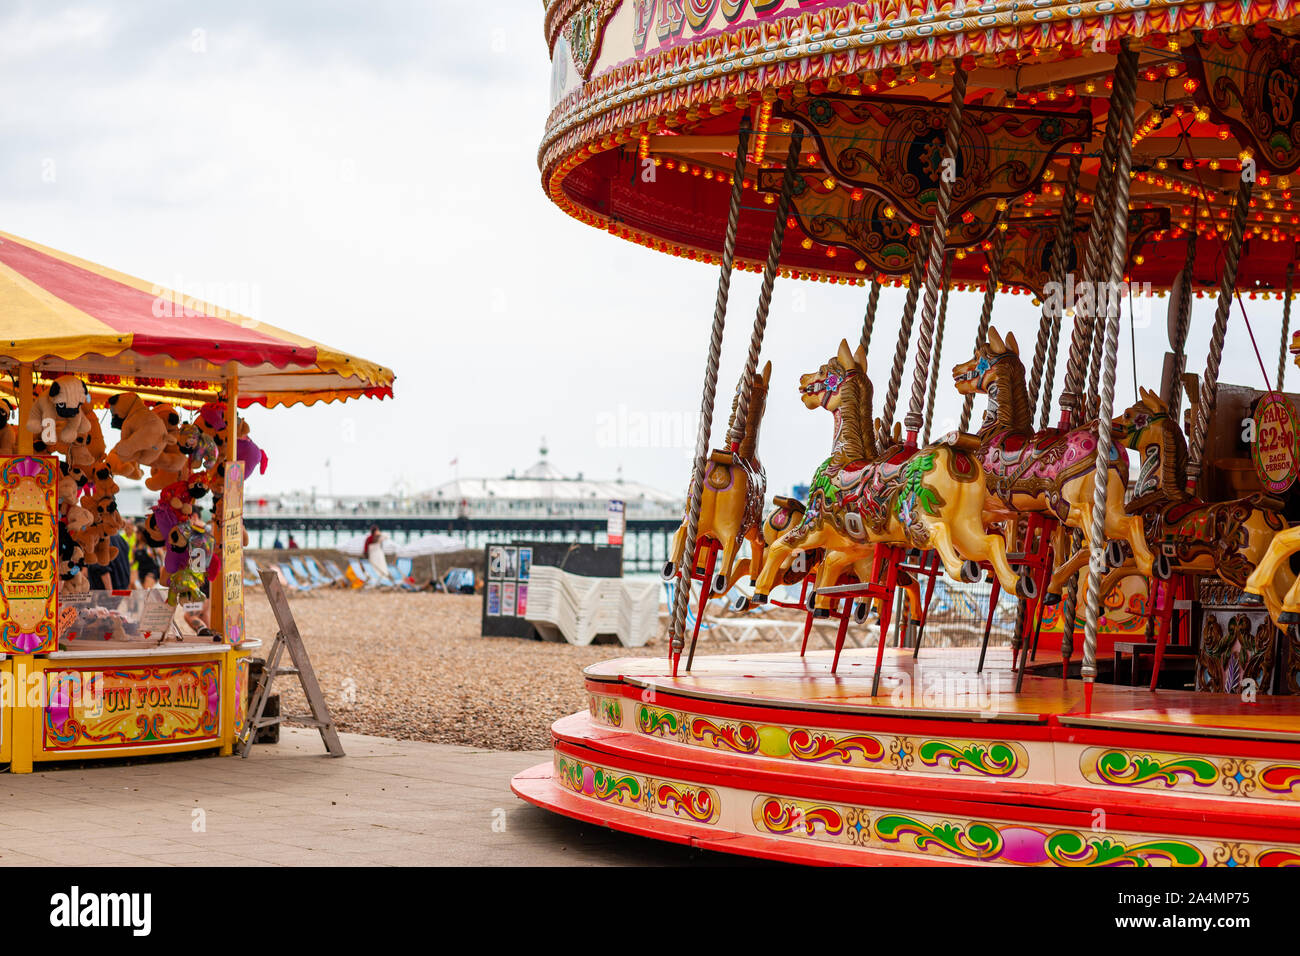 The seaside resort town of Brighton and Hove in East Sussex, England on August 3, 2019. Stock Photo